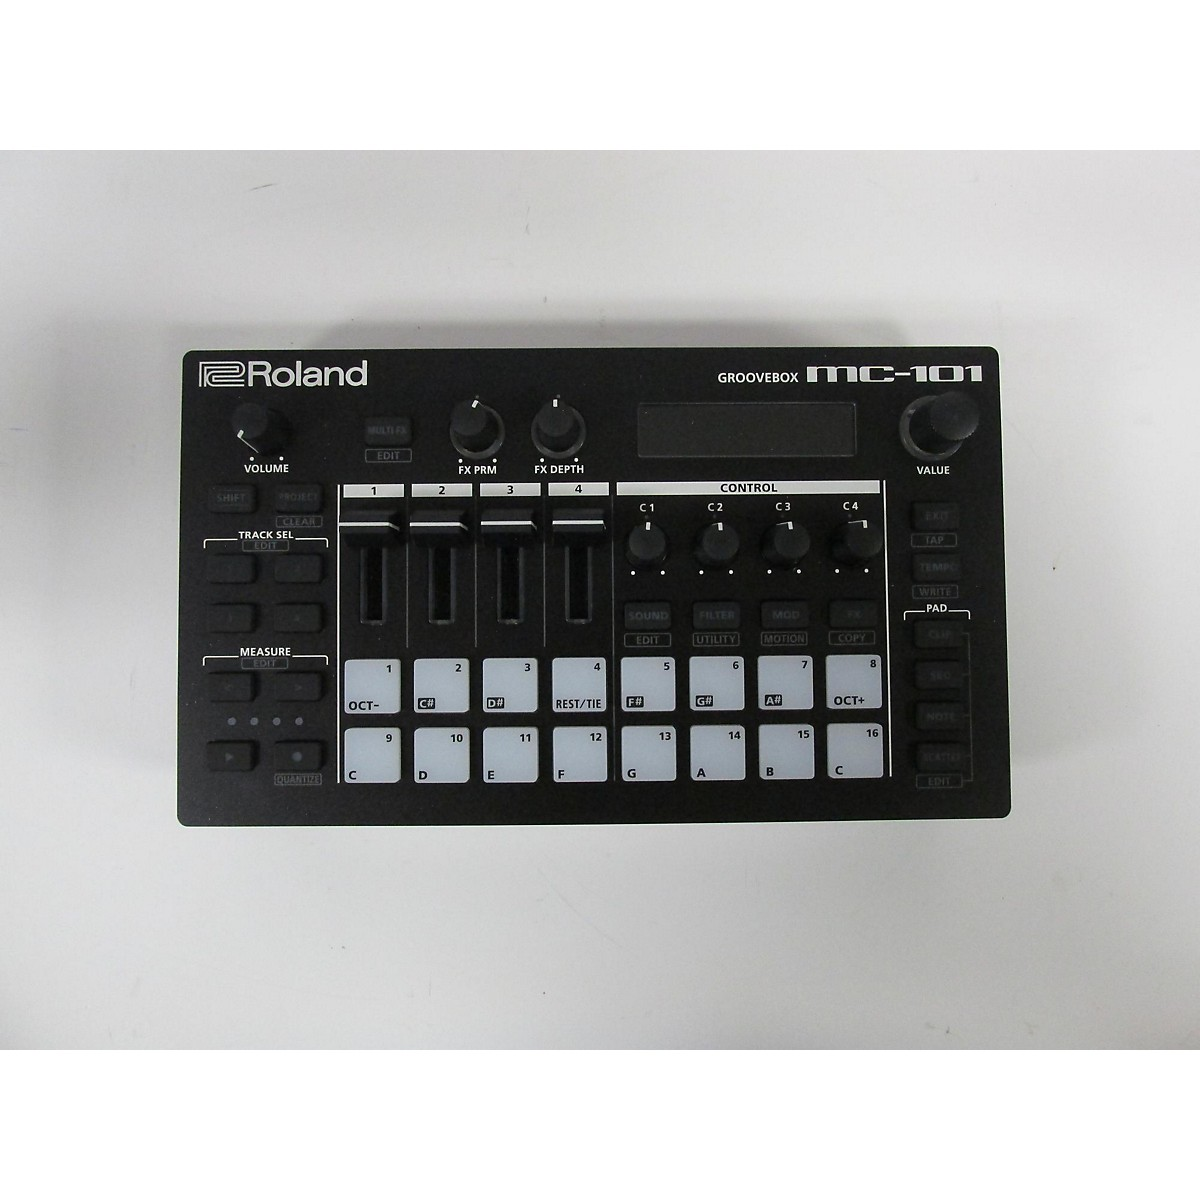 Roland MC101 GROOVEBOX Production Controller